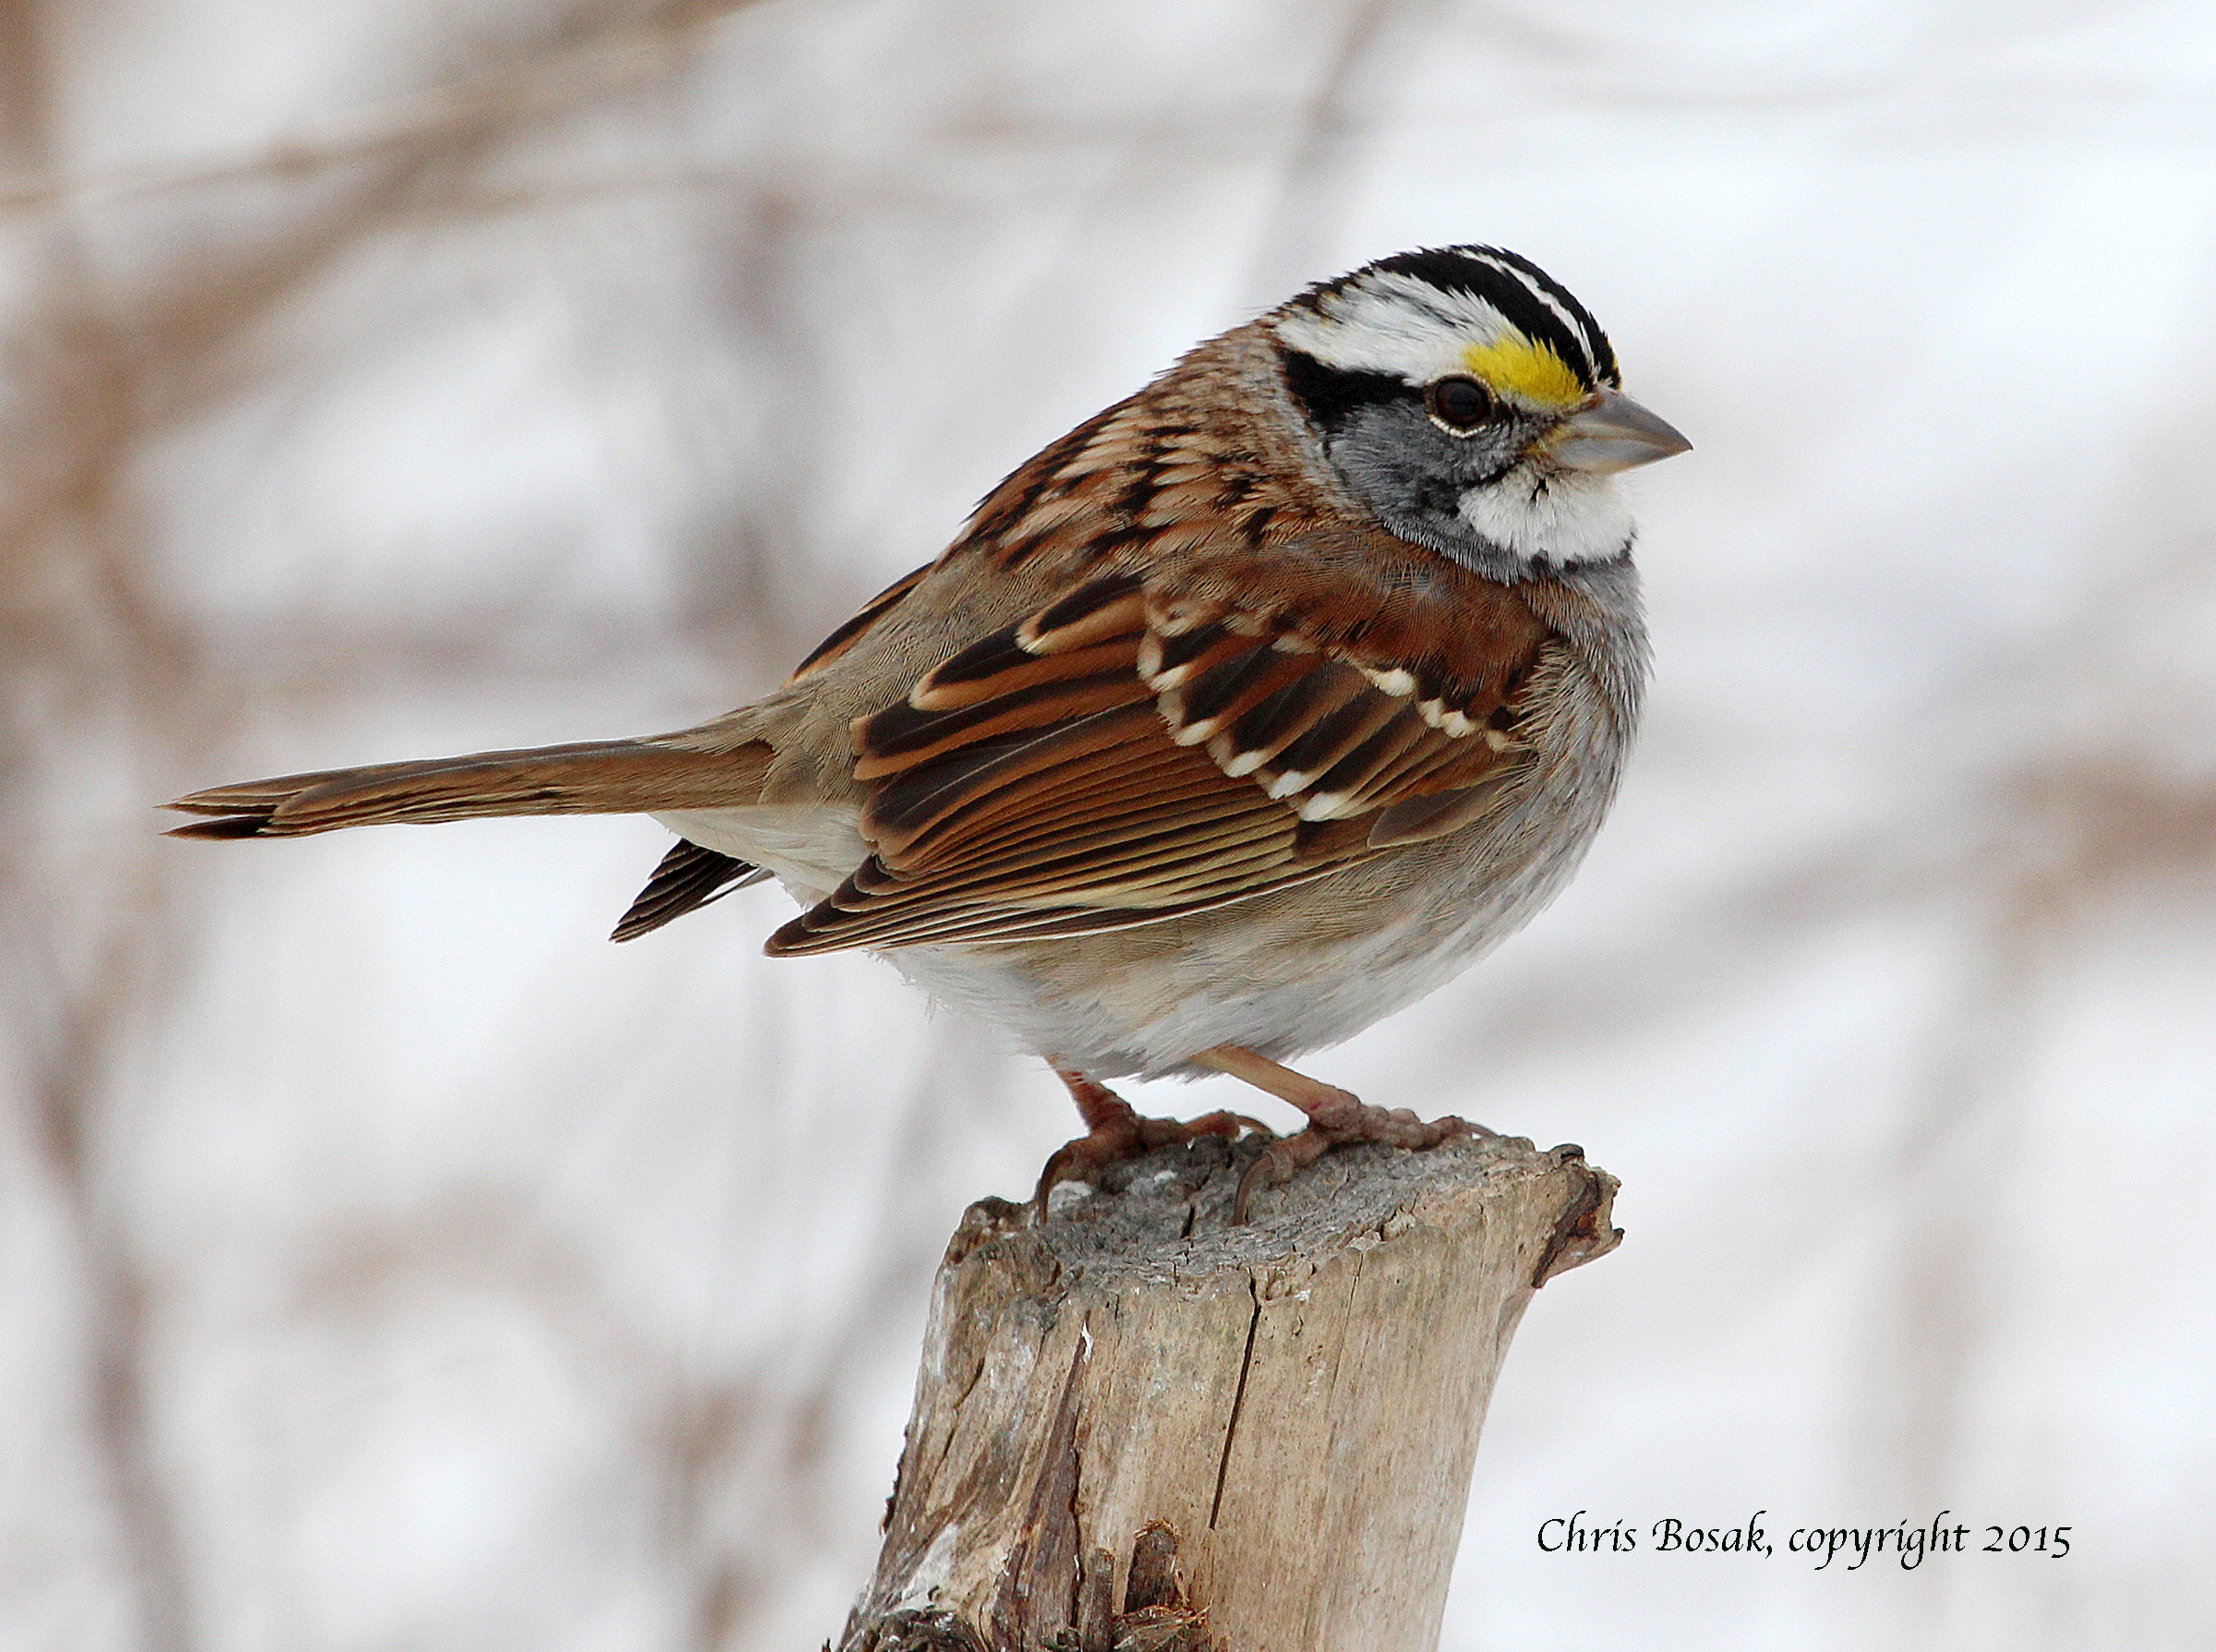 Photo by Chris Bosak A White-throated Sparrow perches on a branch in Stamford, Conn., March 2015.